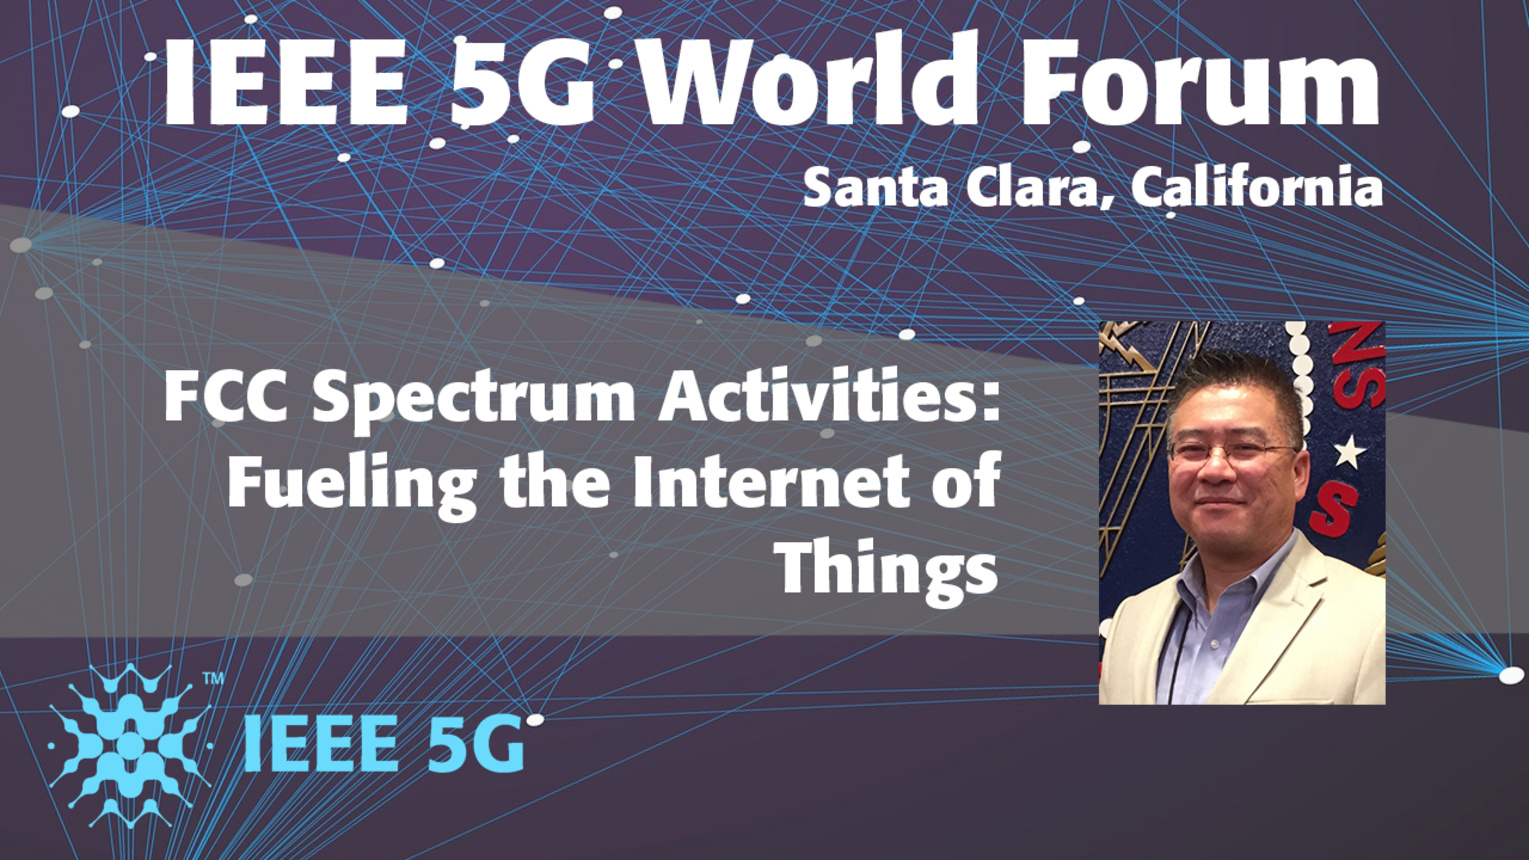 FCC Spectrum Activities: Fueling the Internet of Things - Michael Ha - 5G World Forum Santa Clara 2018